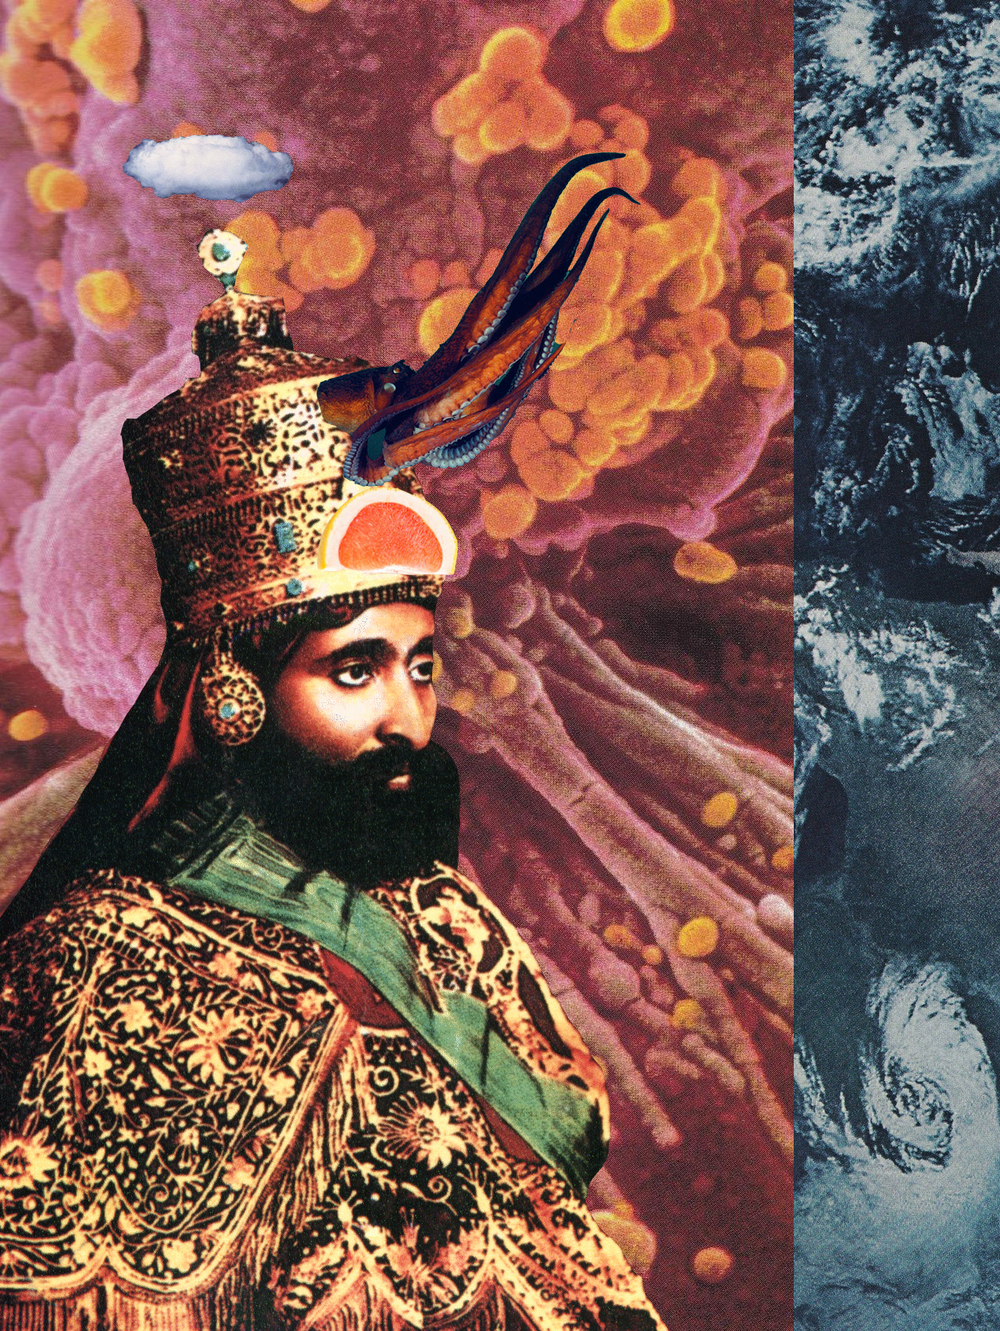 Persian King [collage, 2015]